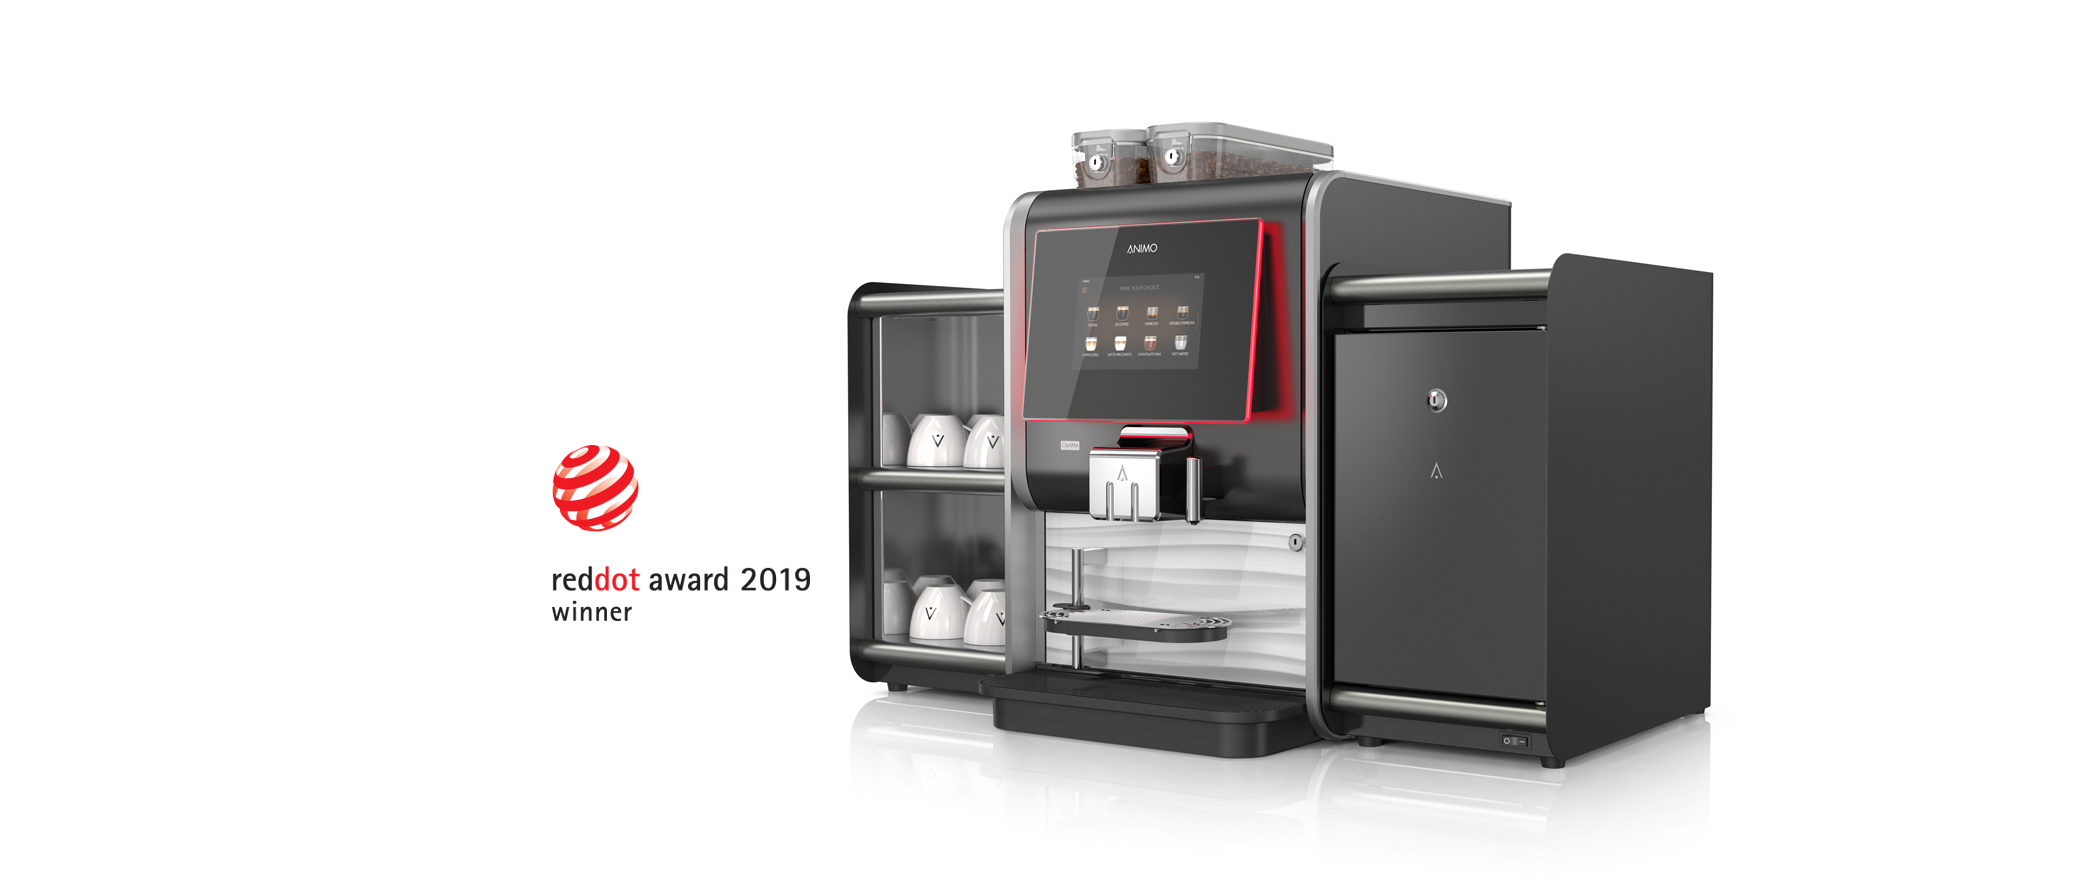 Animo wint met de OptiMe Red Dot Award 2019